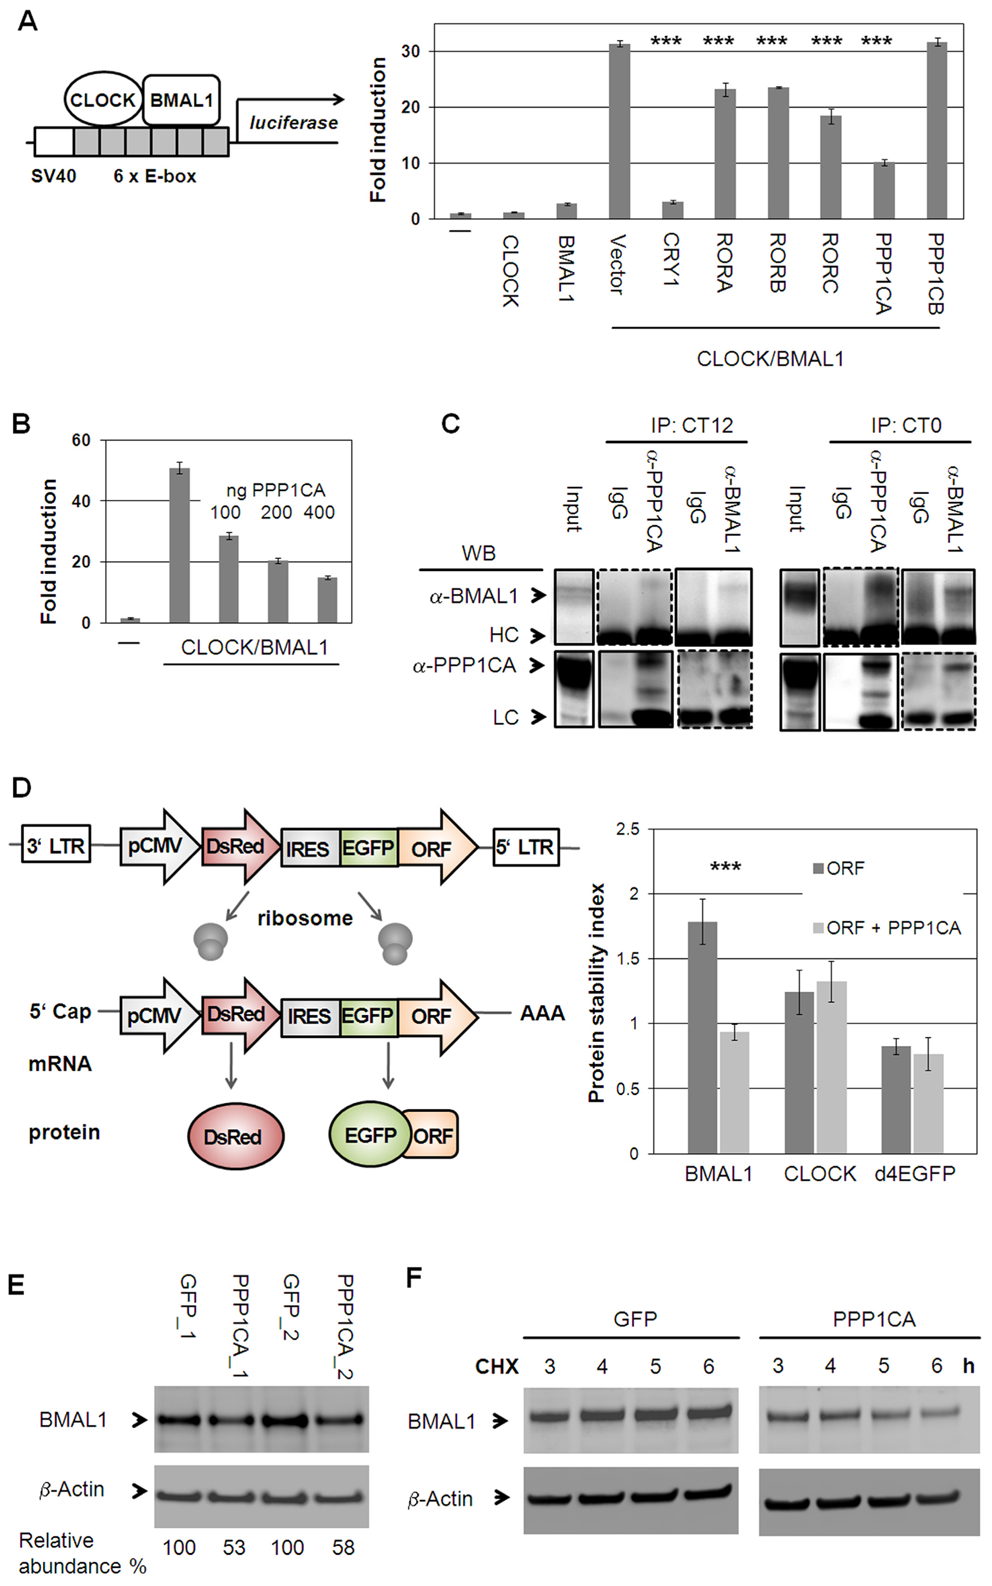 Protein Phosphatase 1 Modulates CLOCK/BMAL1 Function.